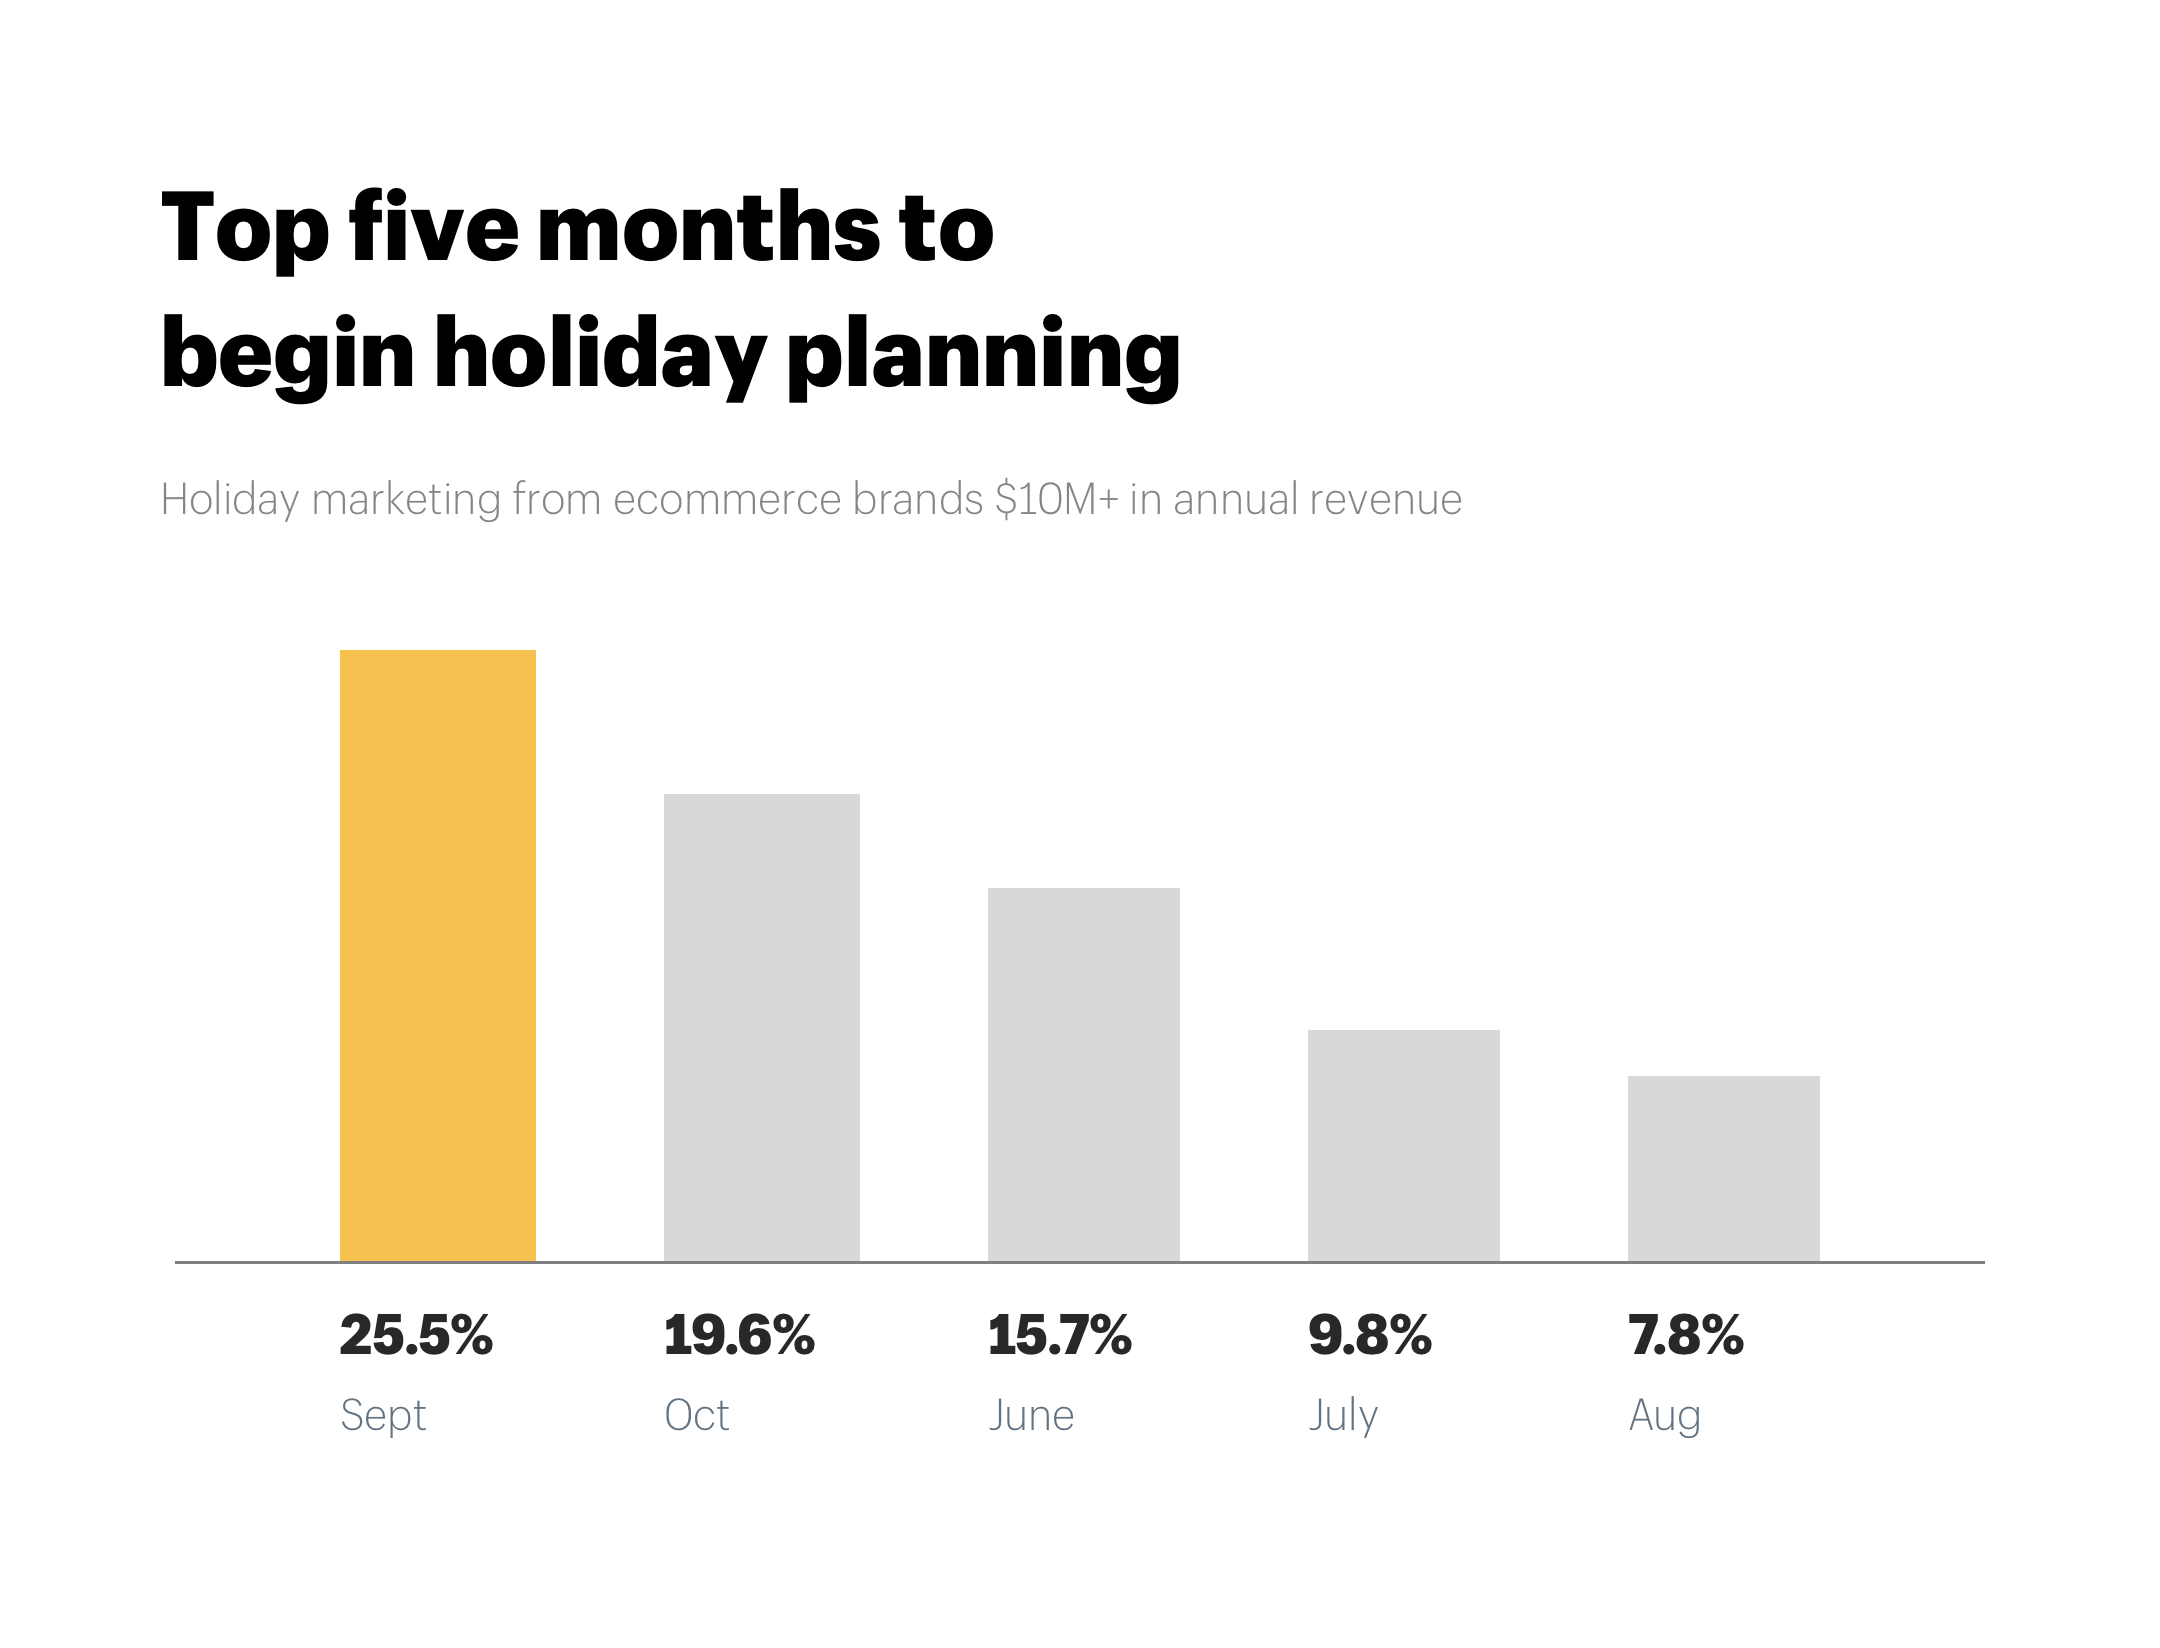 4bcddd112 Holiday marketing ecommerce top five months to begin holiday planning